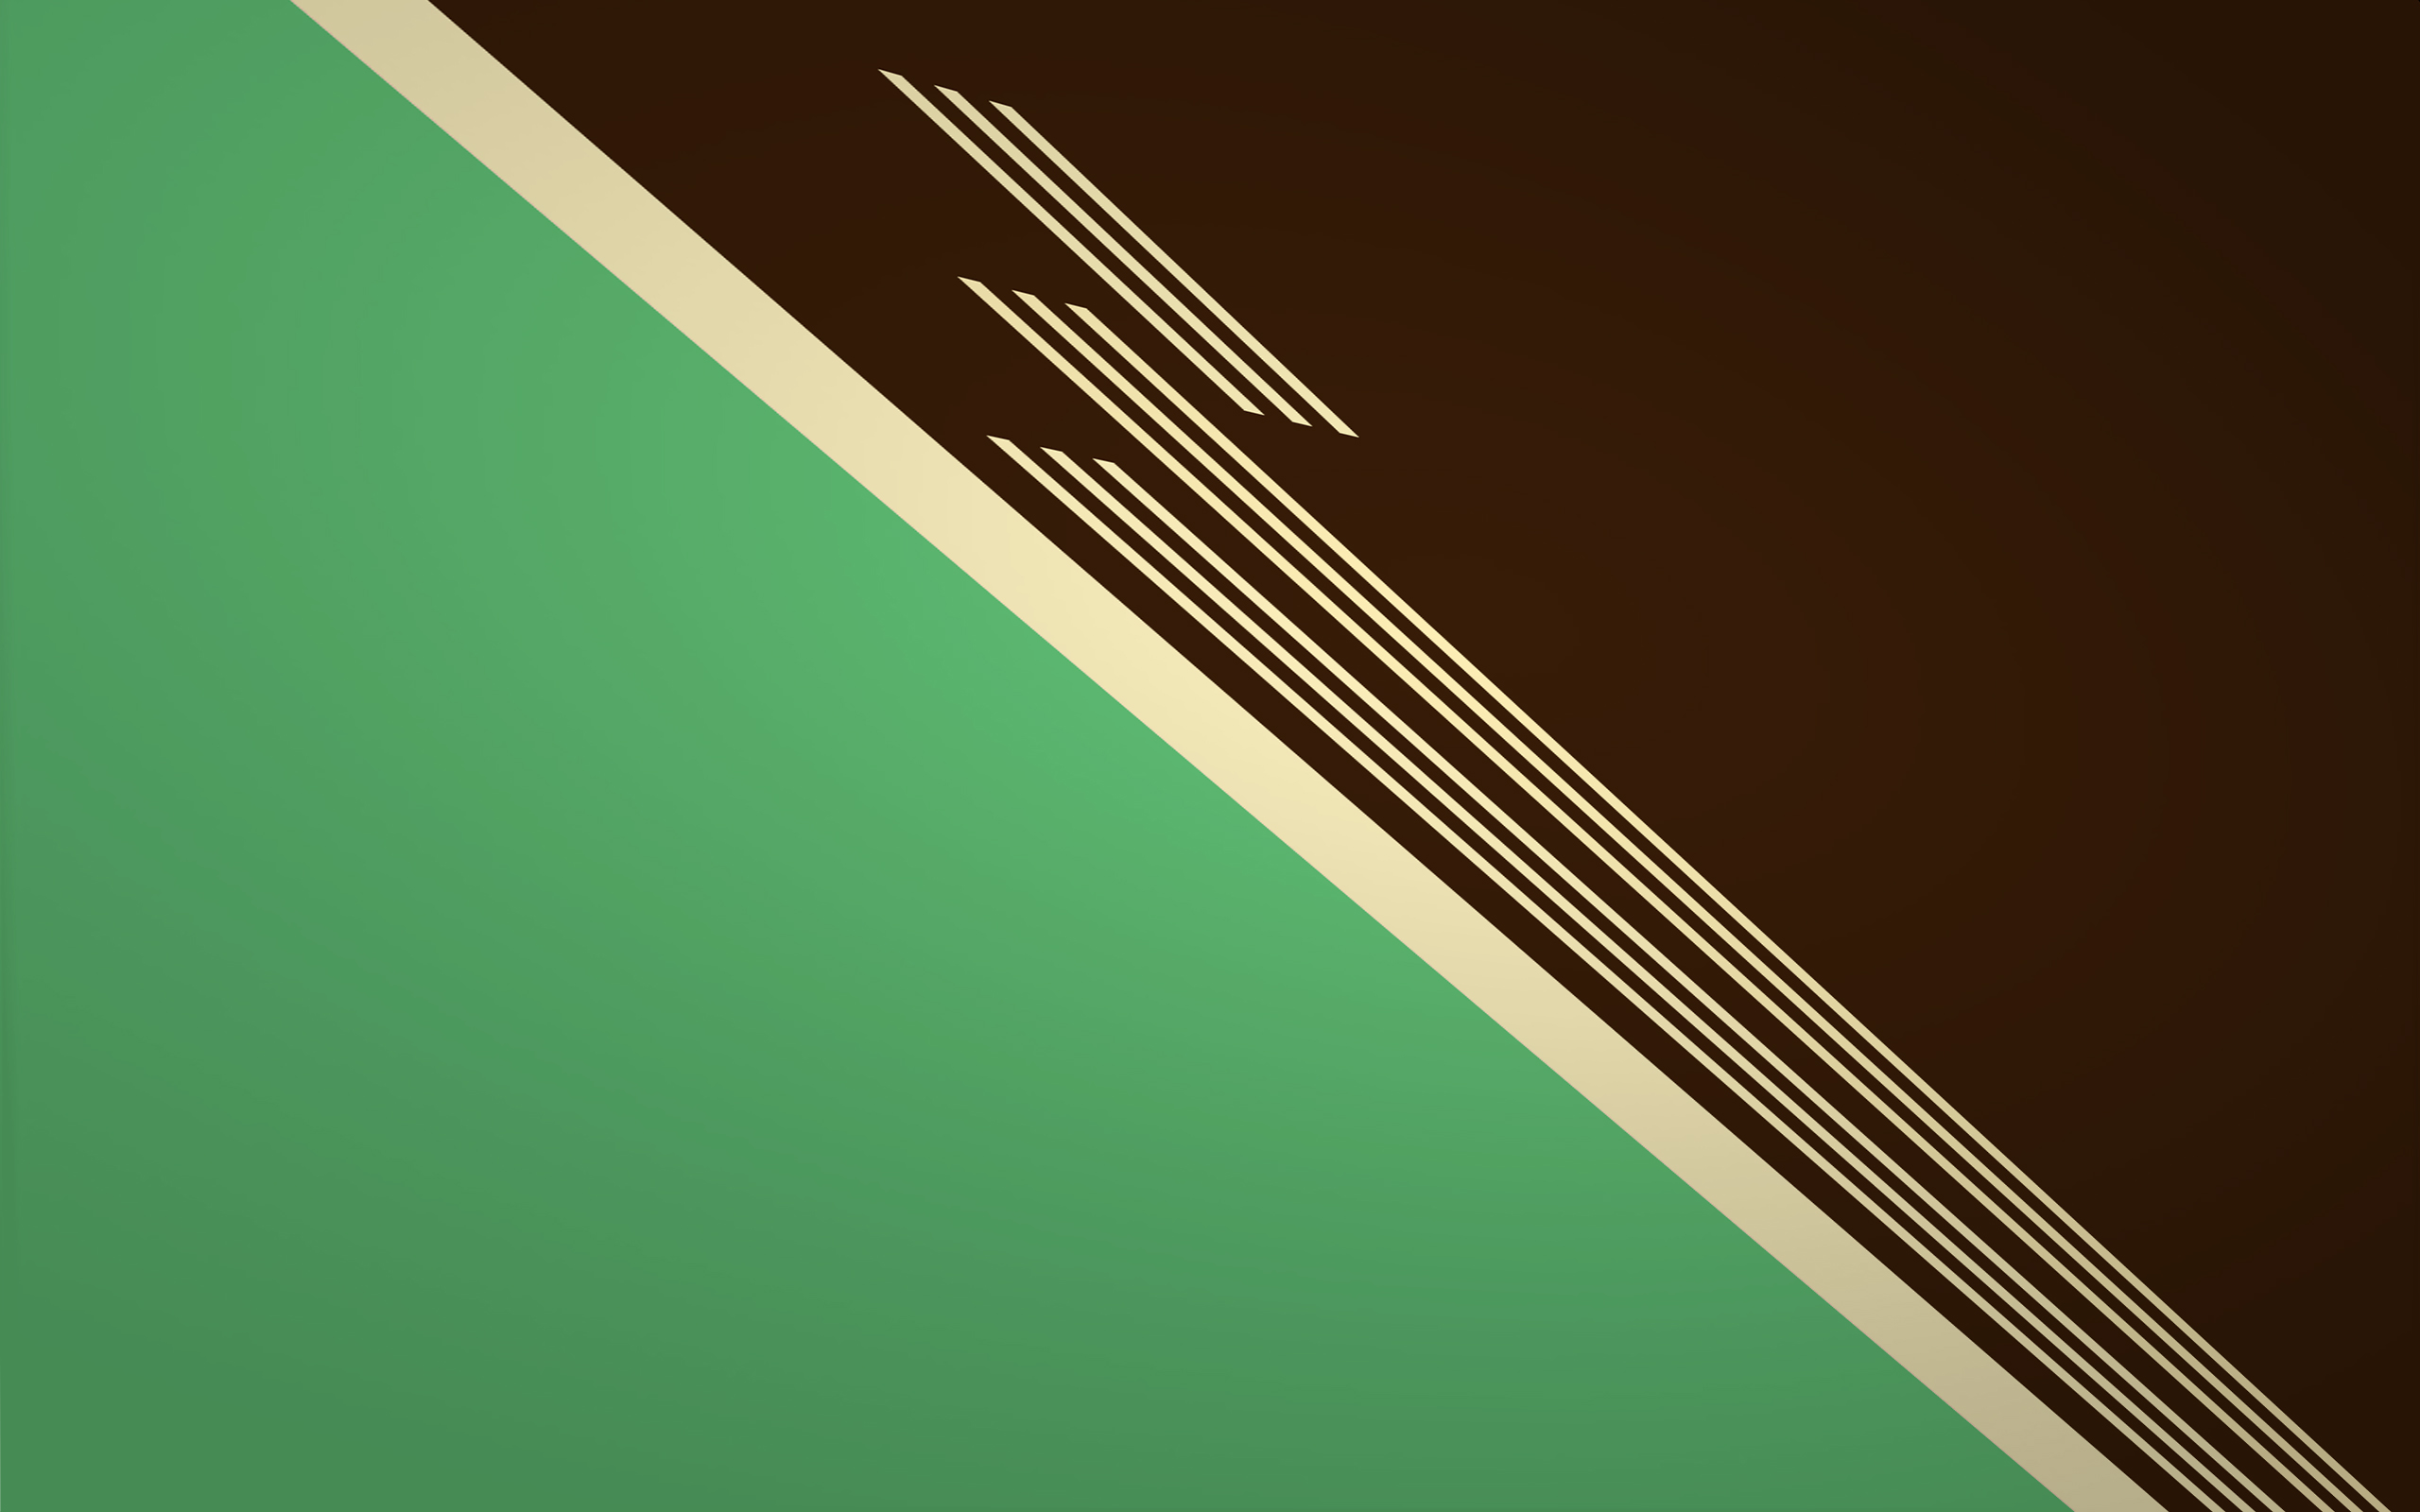 Retro Wallpaper 1832